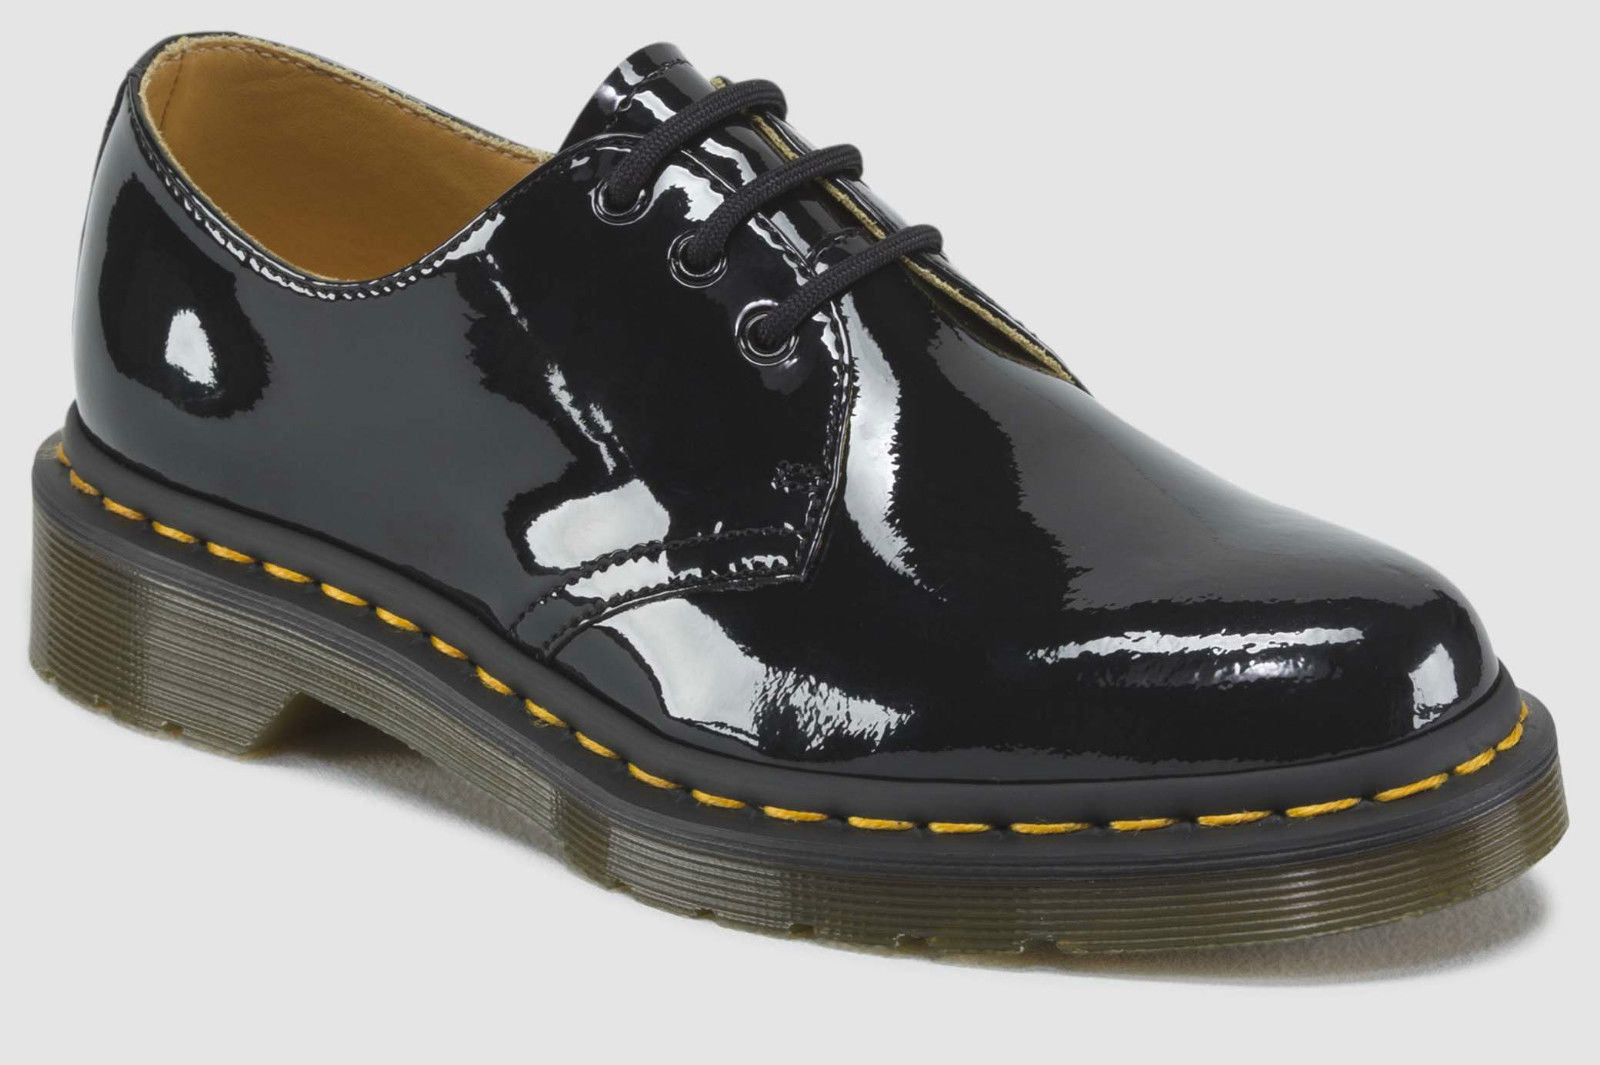 1461 Patent 3 Eye Shoes Genuine Leather Ladies Womens Shiny Gloss